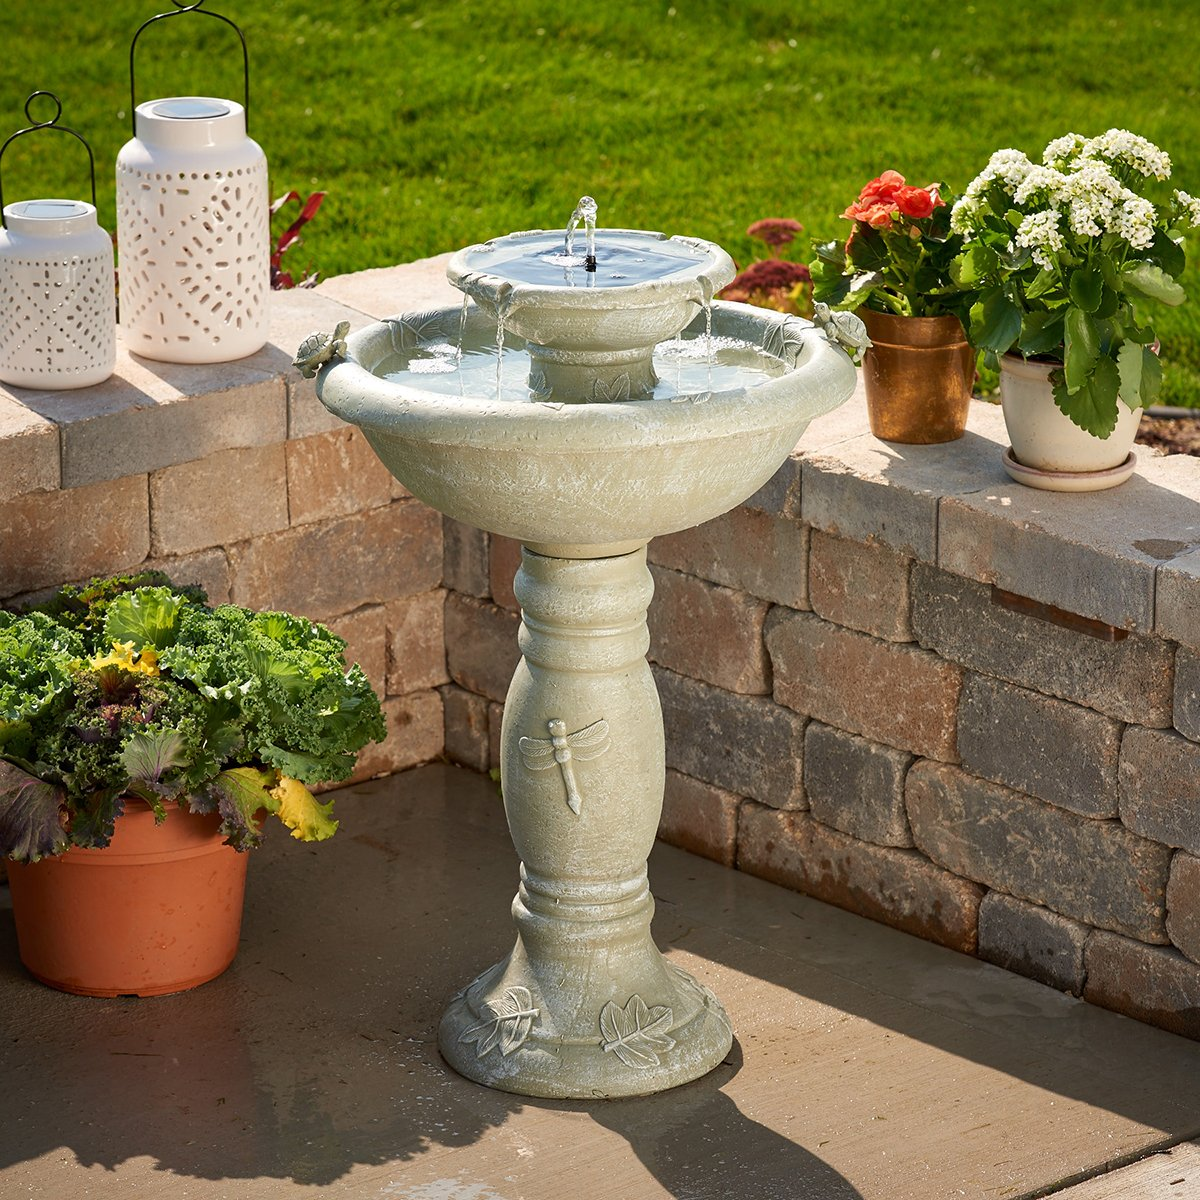 Smart Solar 34222RM1 Gray Weathered Stone Country Gardens 2-Tier Solar-On-Demand Fountain, Designed For Low Maintenance and Requires No Wiring or Operating Costs by Smart Solar (Image #2)